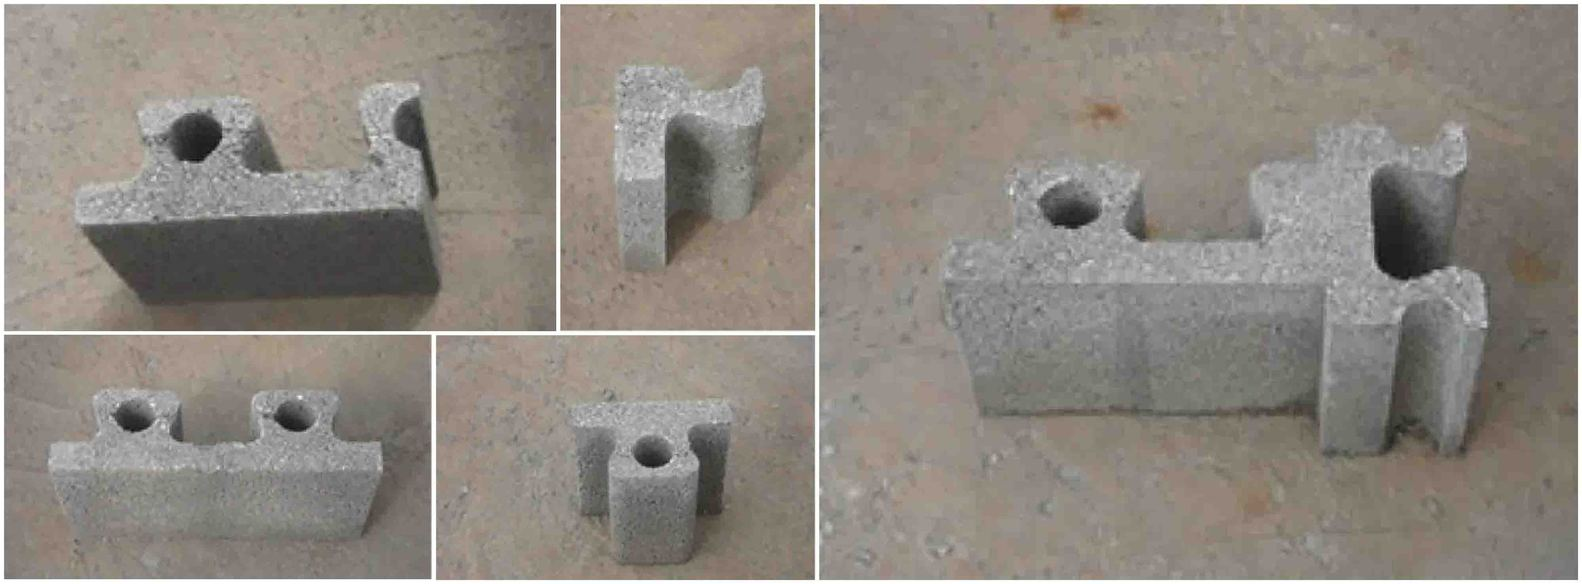 ad-this-self-build-concrete-block-system-reduces-construction-time-by-50-03